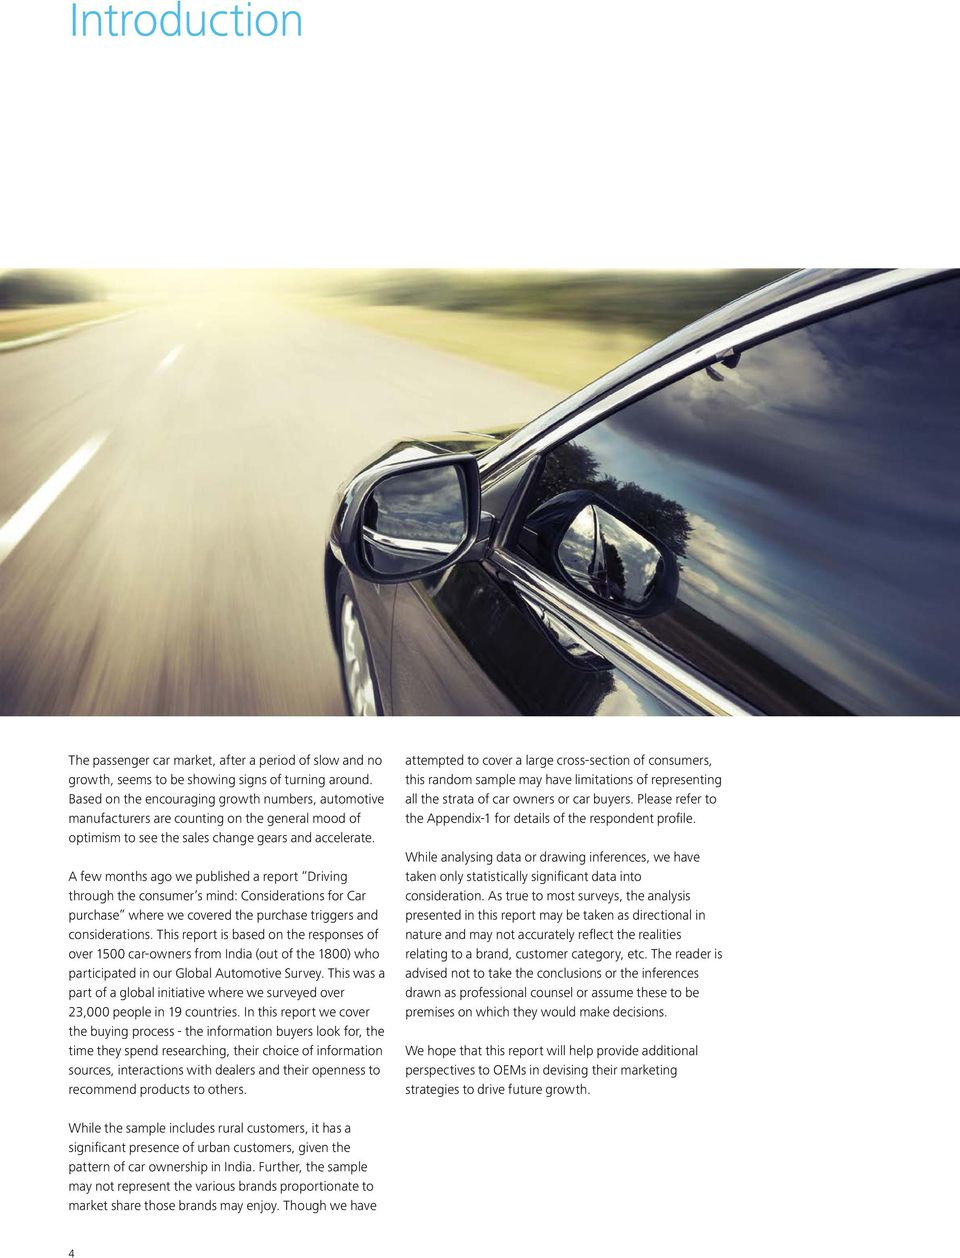 A few months ago we published a report Driving through the consumer s mind: Considerations for Car purchase where we covered the purchase triggers and considerations.